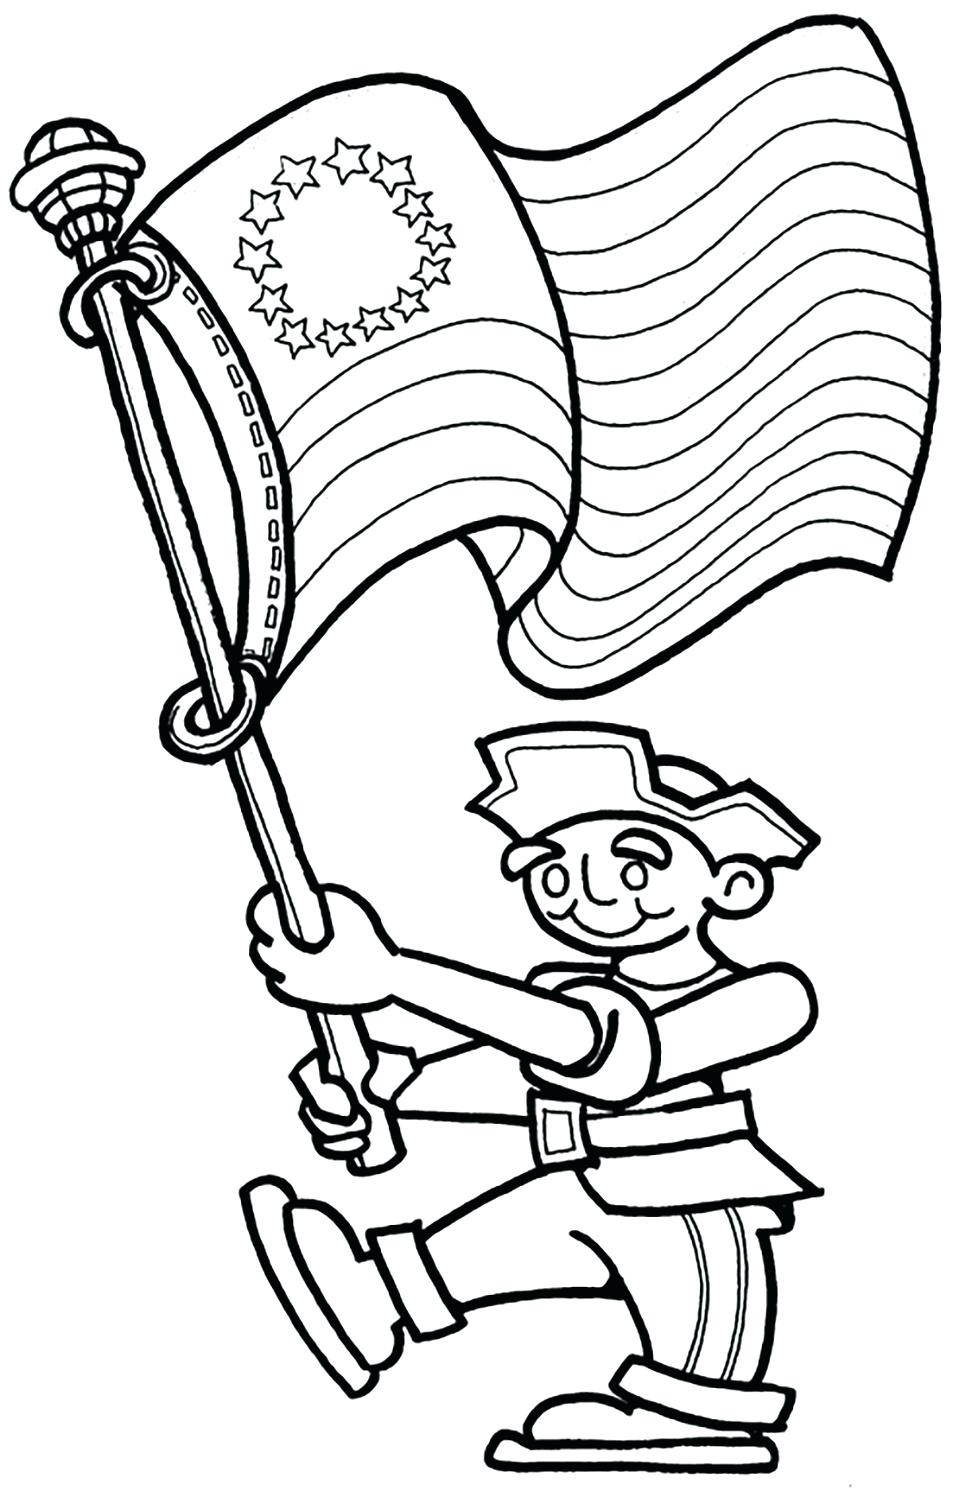 972x1497 Coloring Pages Fourth Of July Coloring Pages Top Graphic